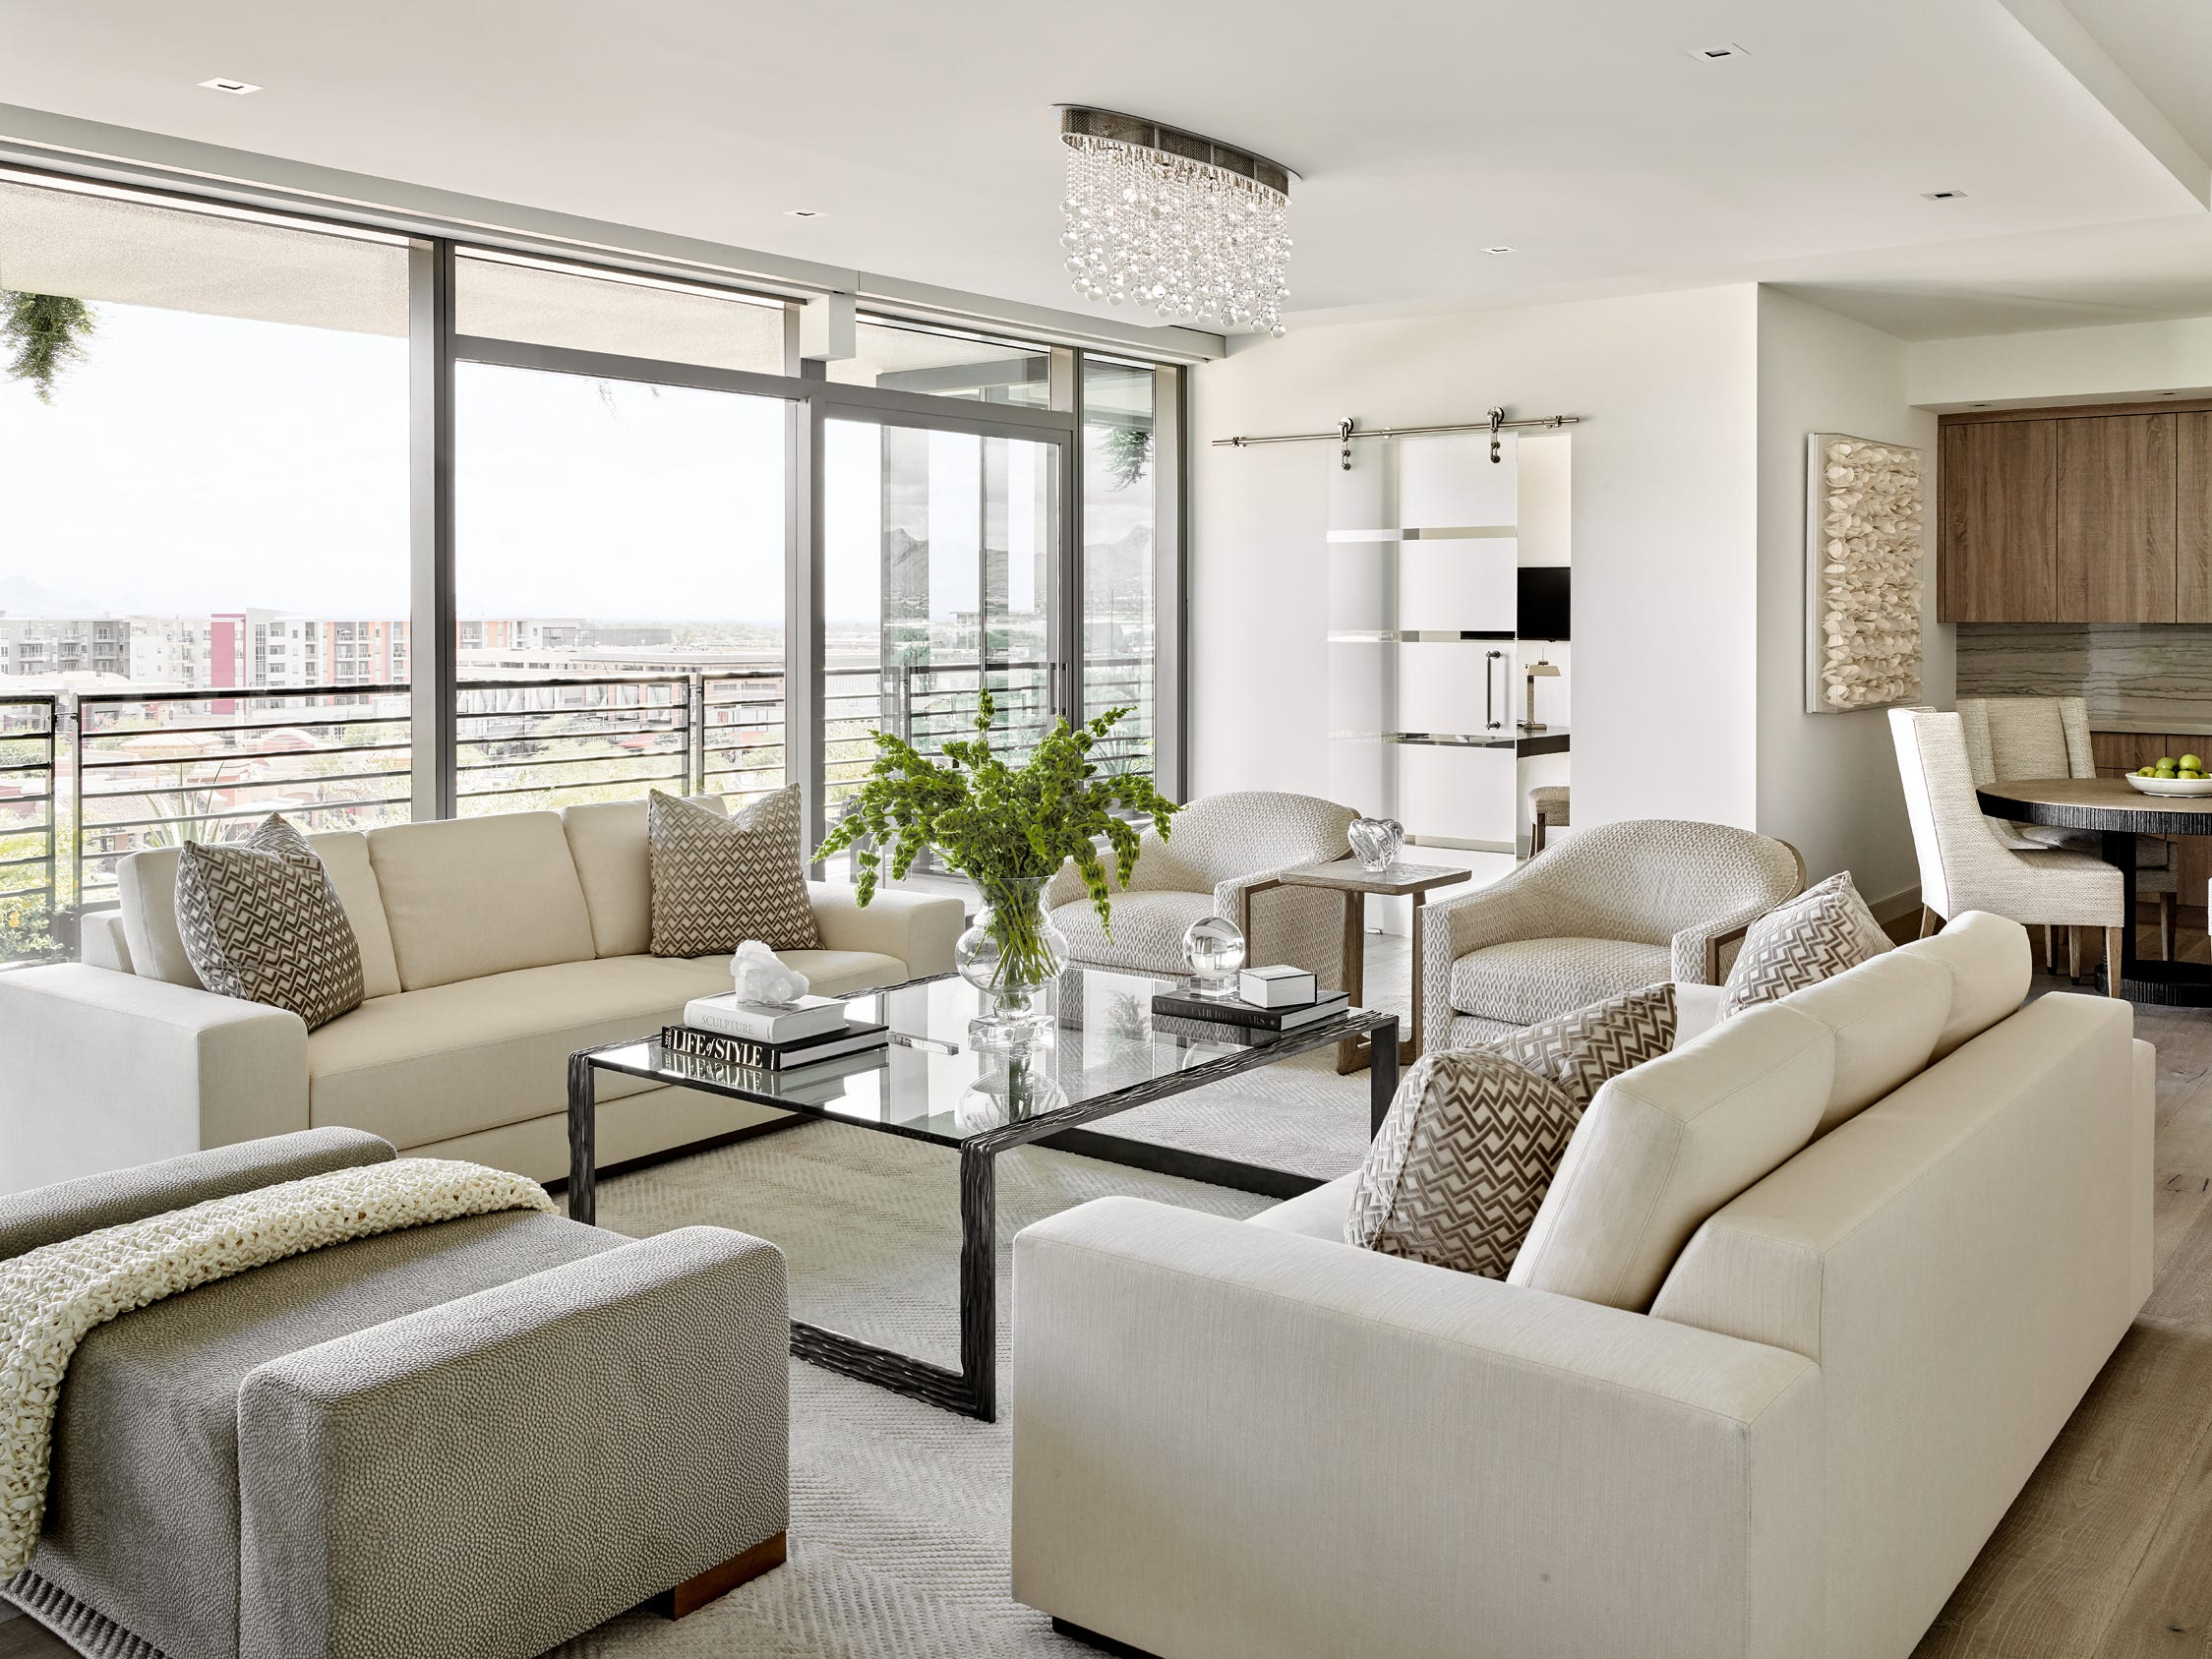 With the help of Lissa Hickman, of LHL Inc., the homeowners designed and furnished the residence.